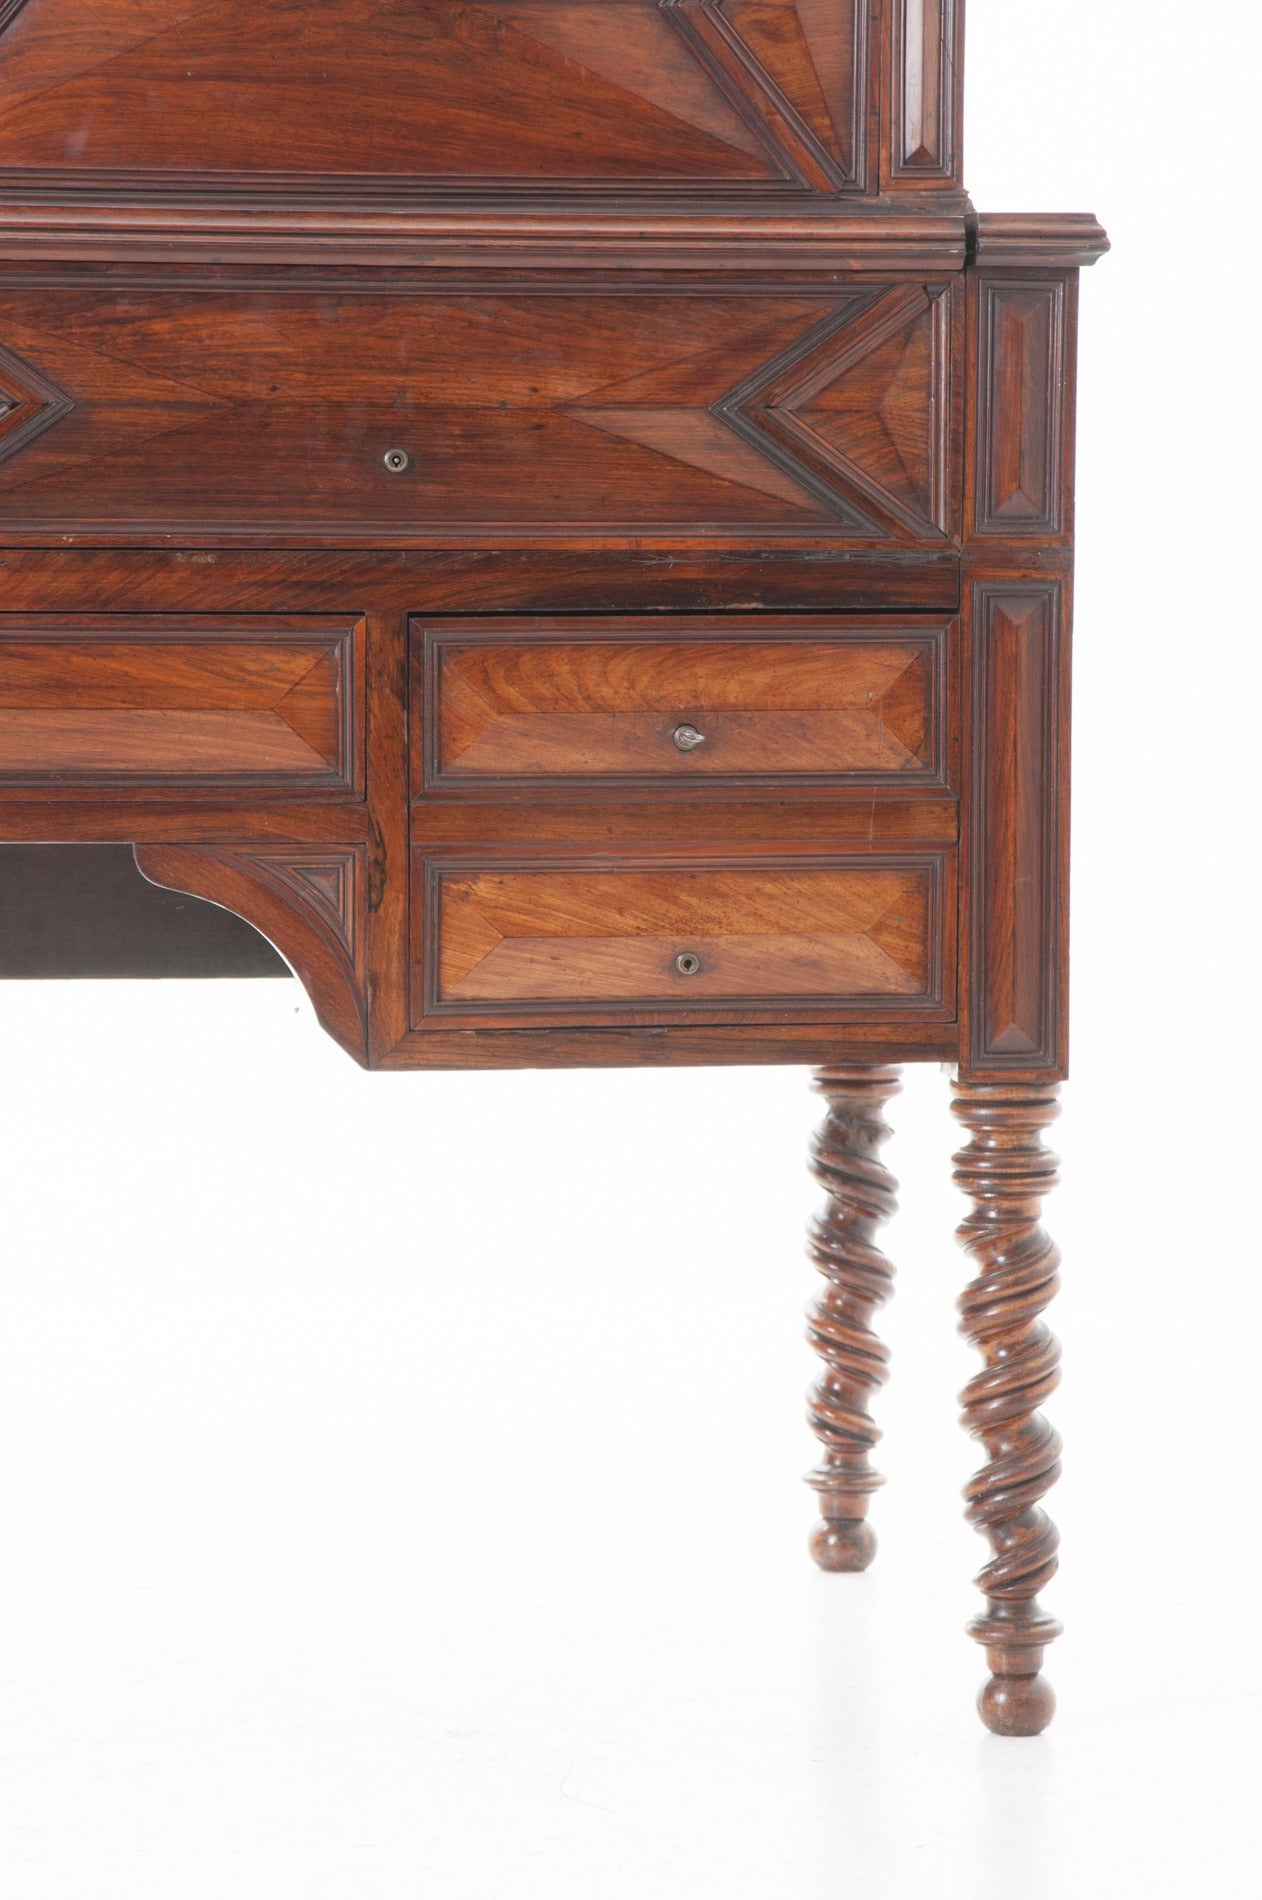 French 19th Century Barley Twist Fold Down Desk In Good Condition For Sale In Baton Rouge, LA